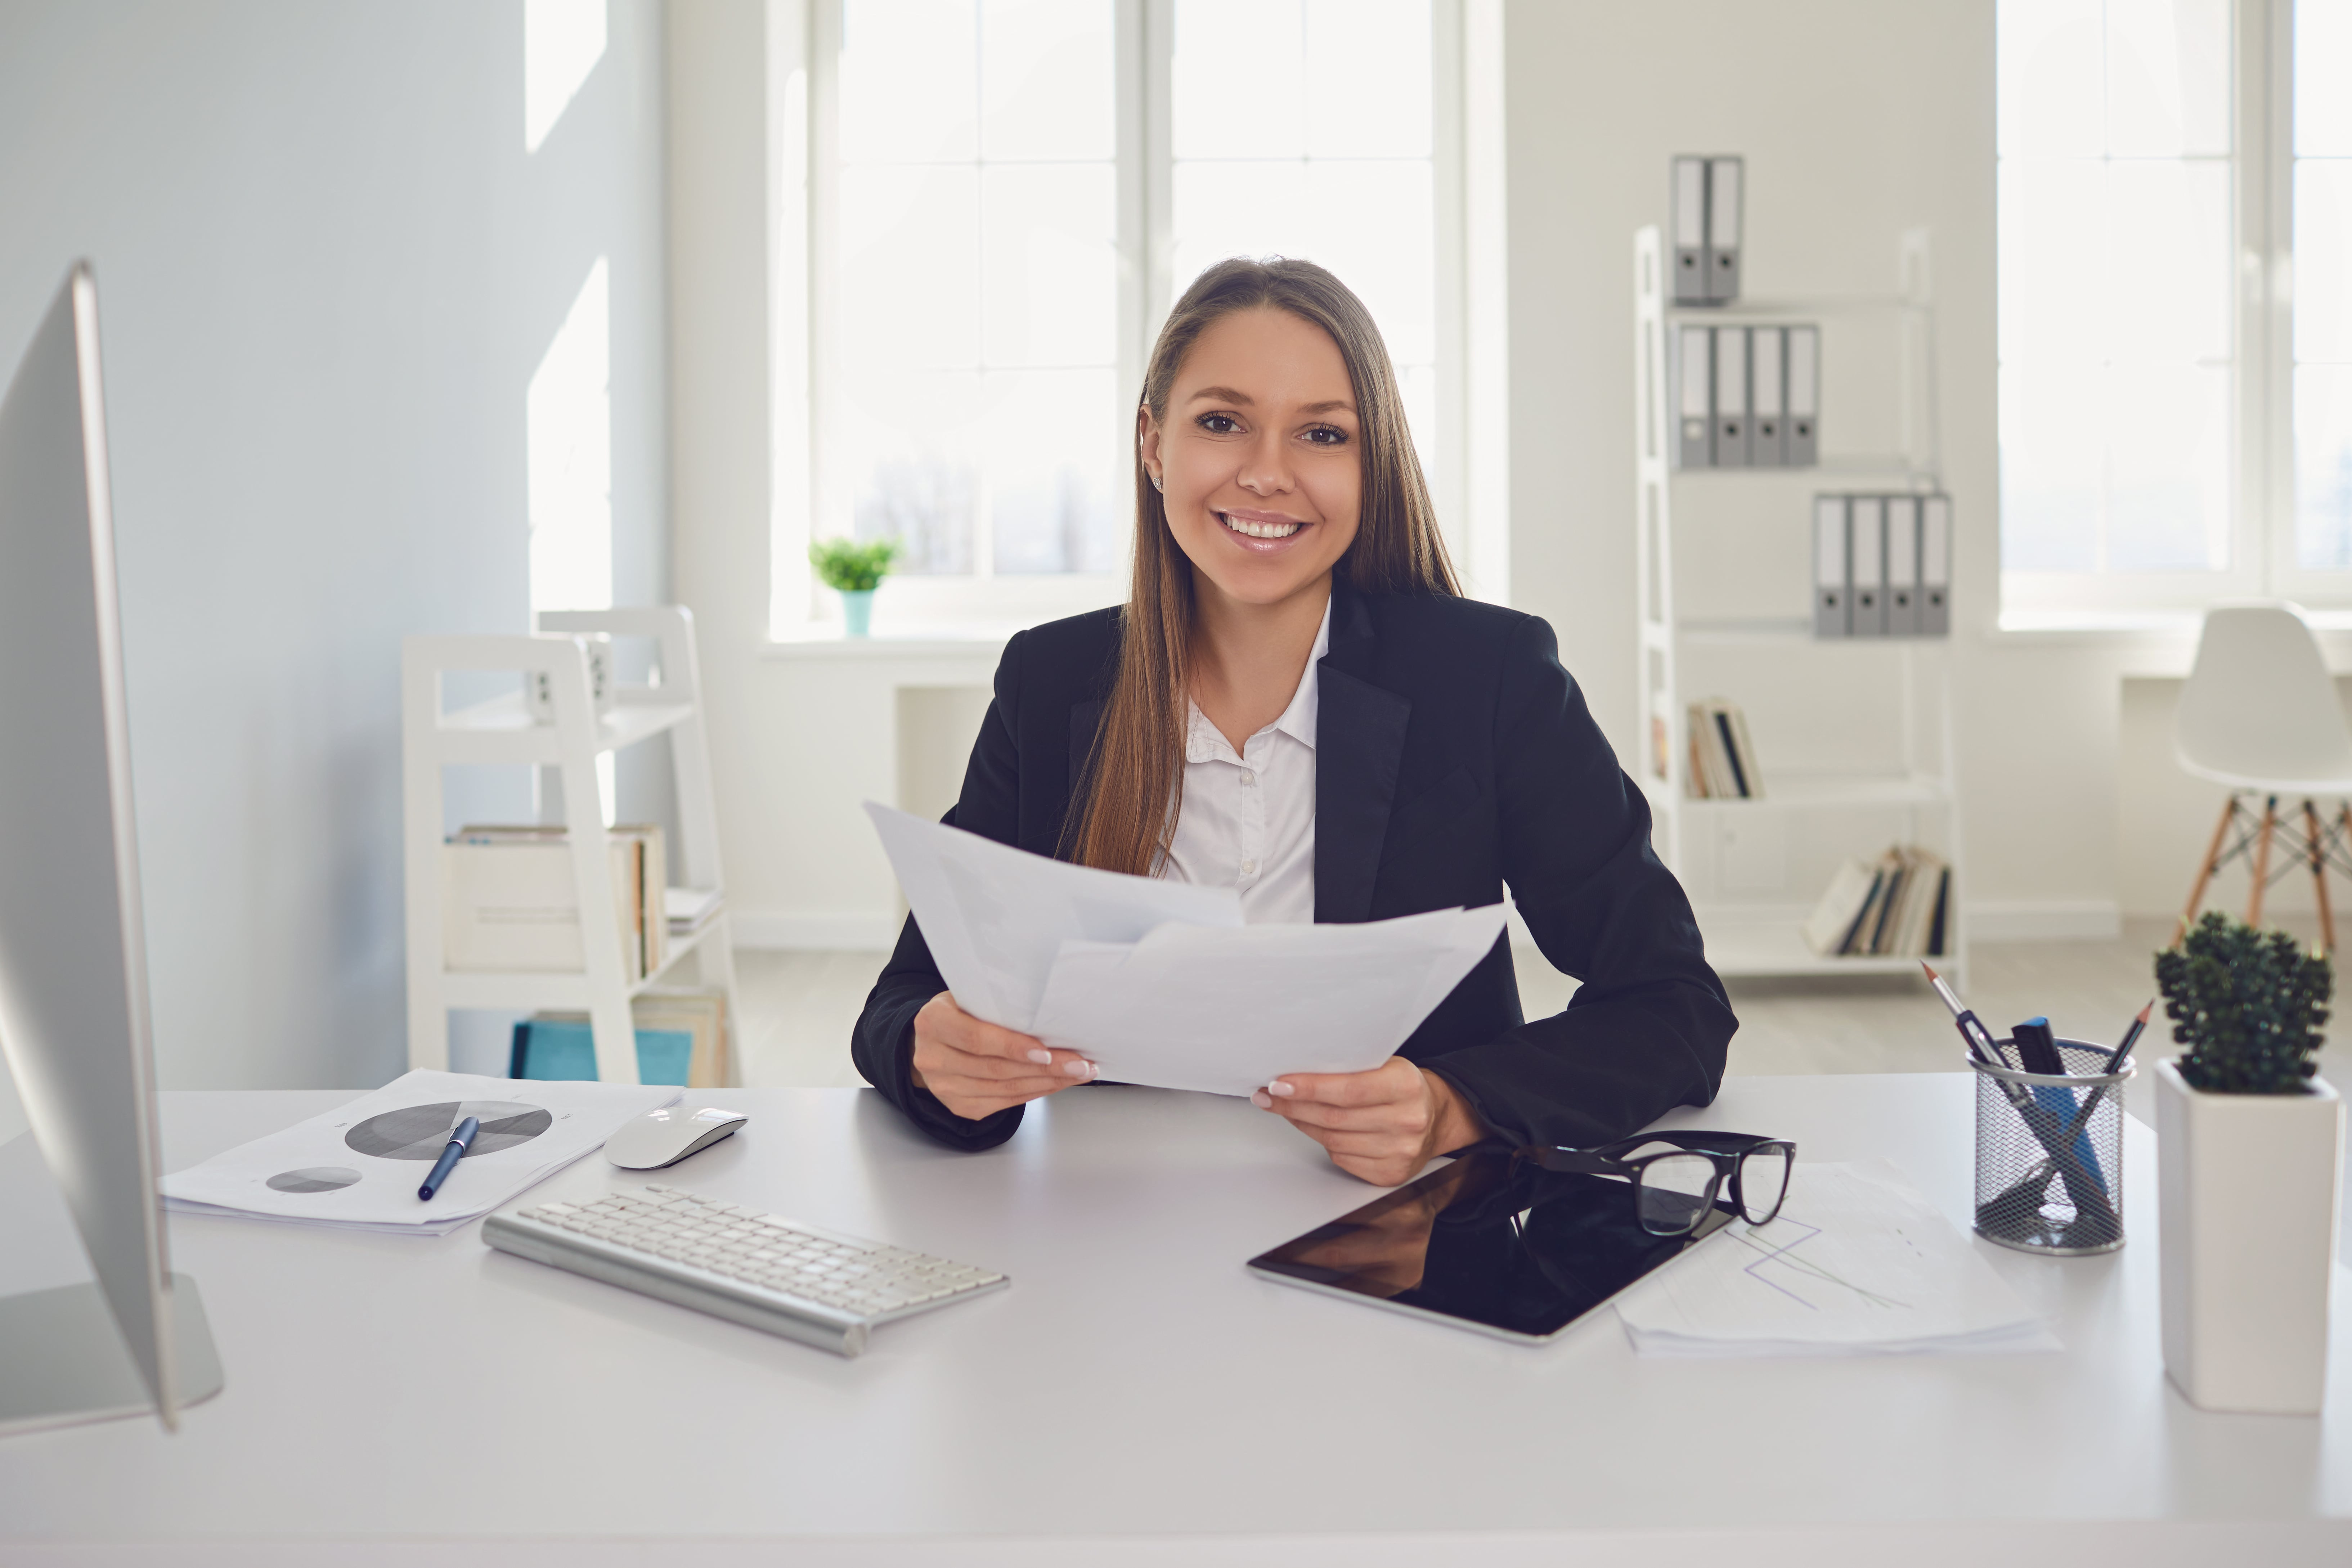 10 Ways to Become a Successful Manager